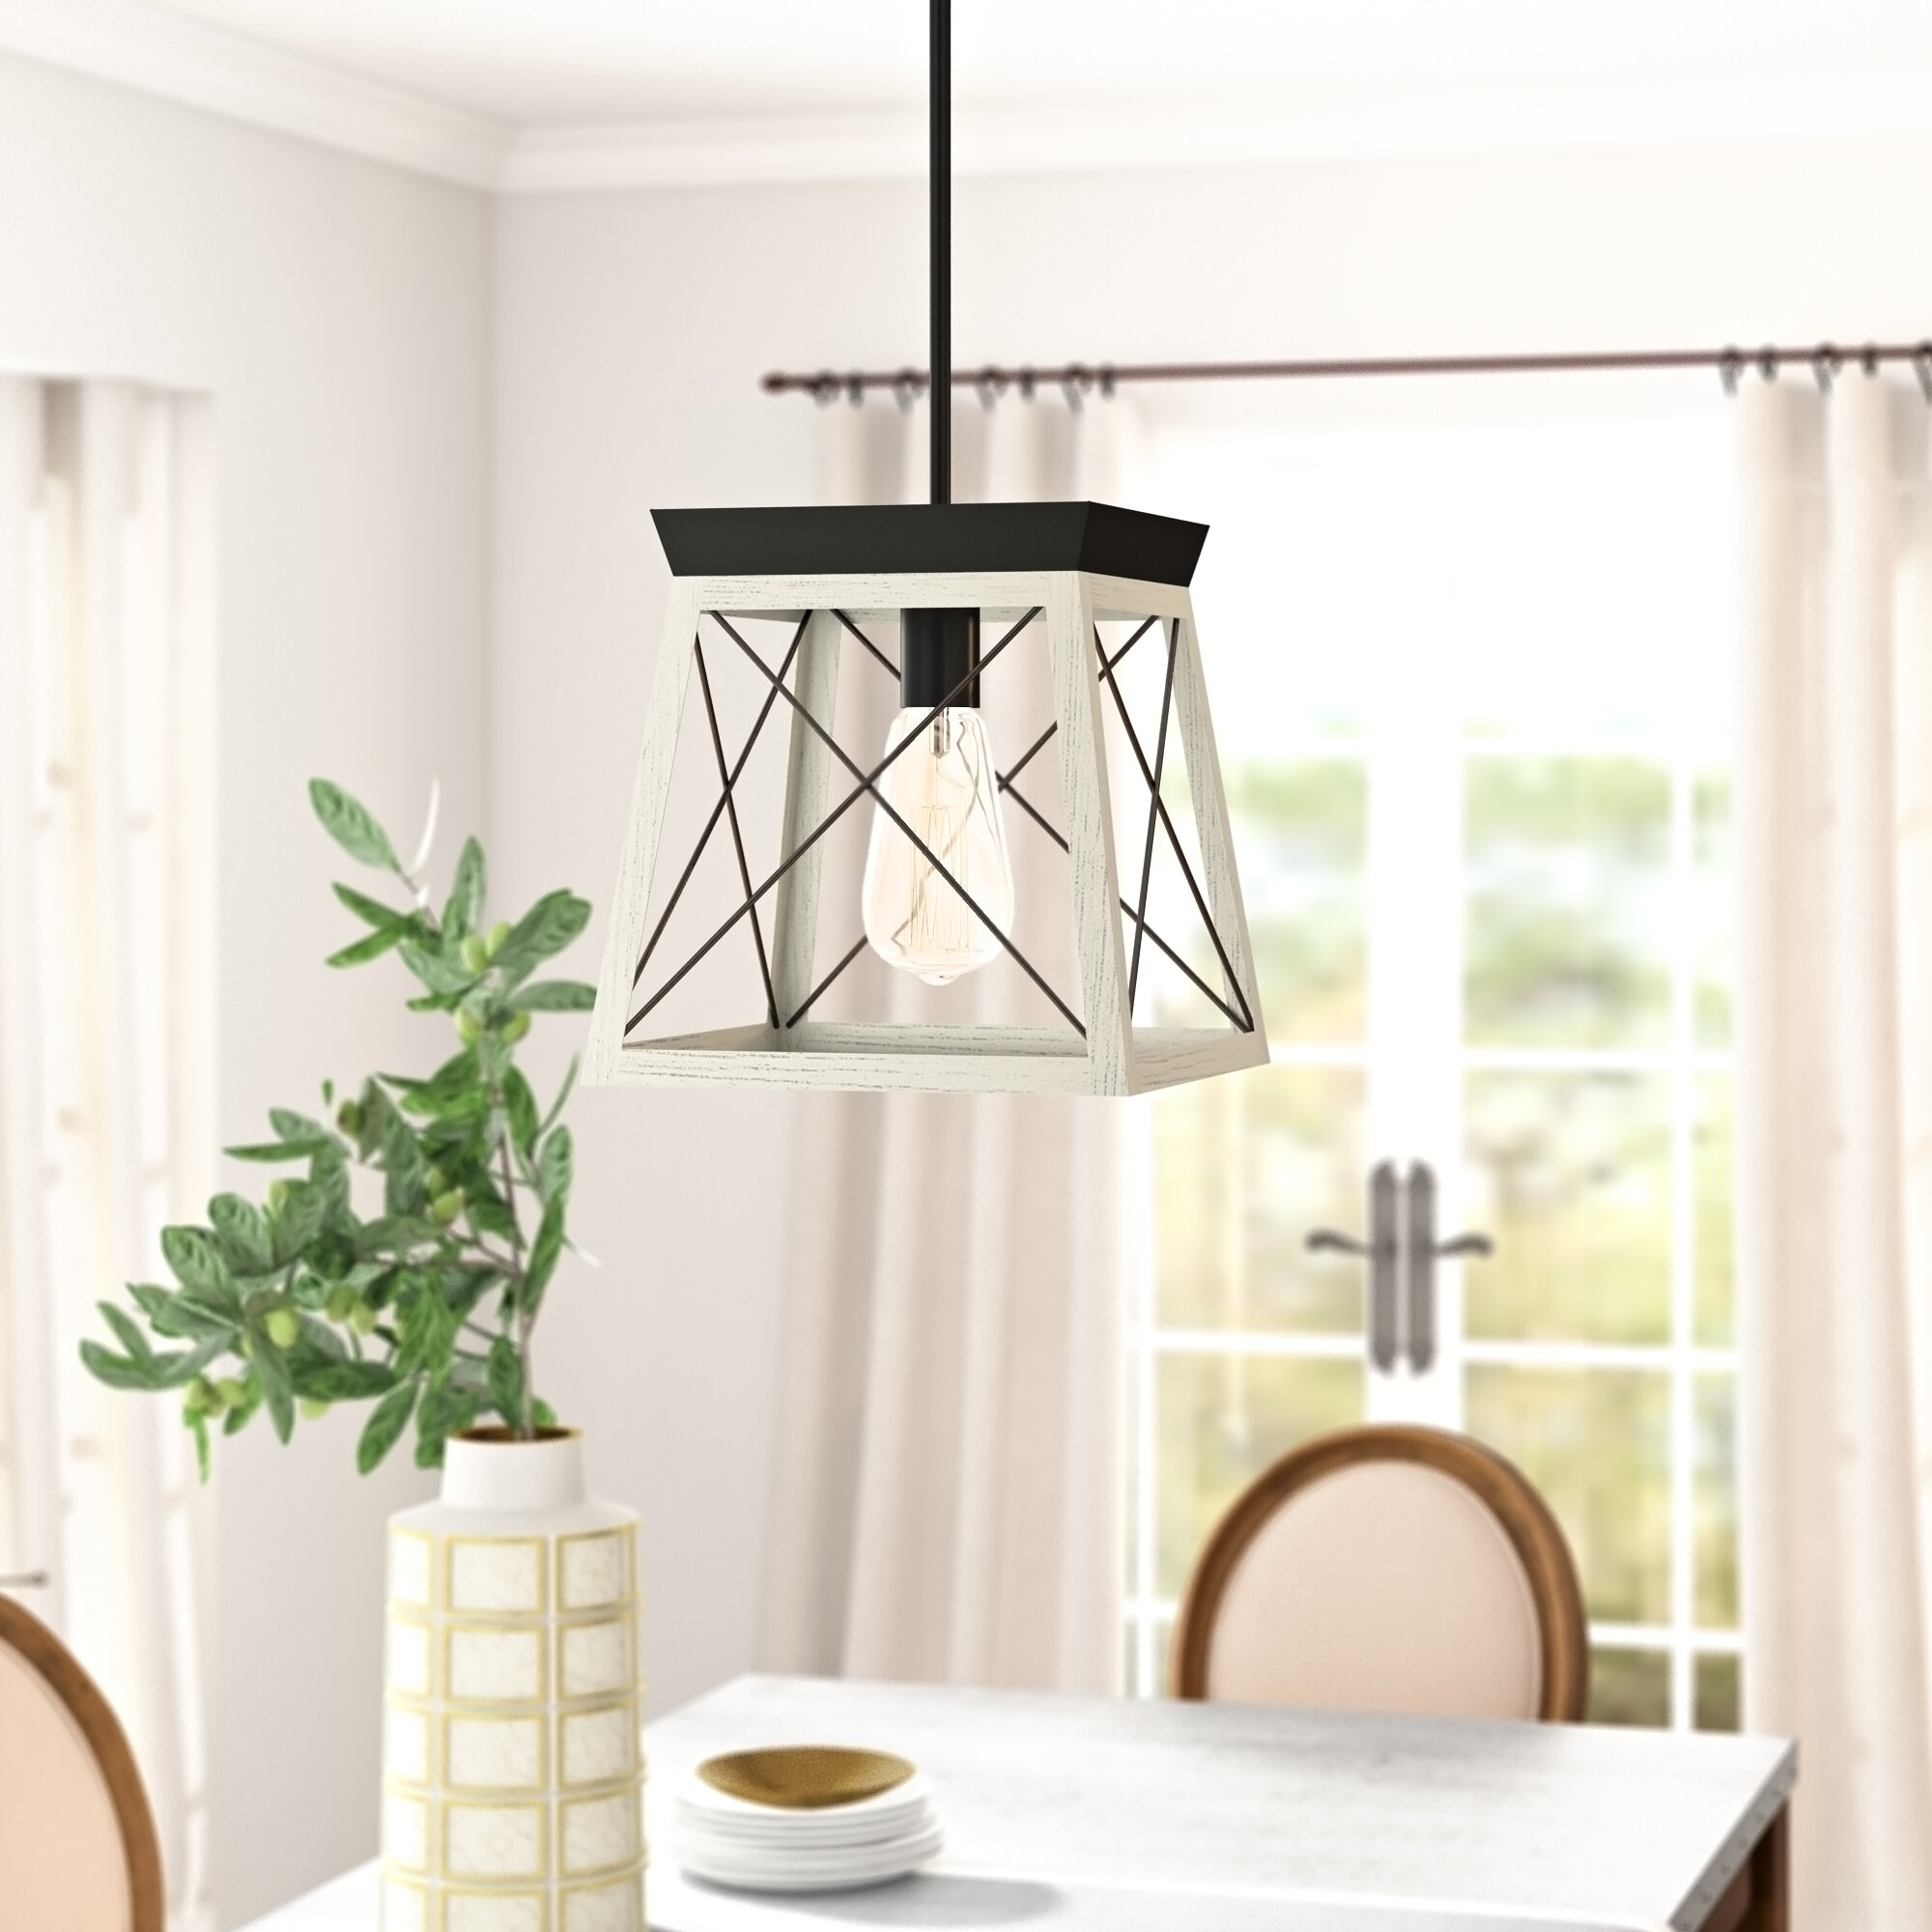 Delon 1 Light Lantern Geometric Pendant Regarding Delon 1 Light Lantern Geometric Pendants (Gallery 4 of 30)